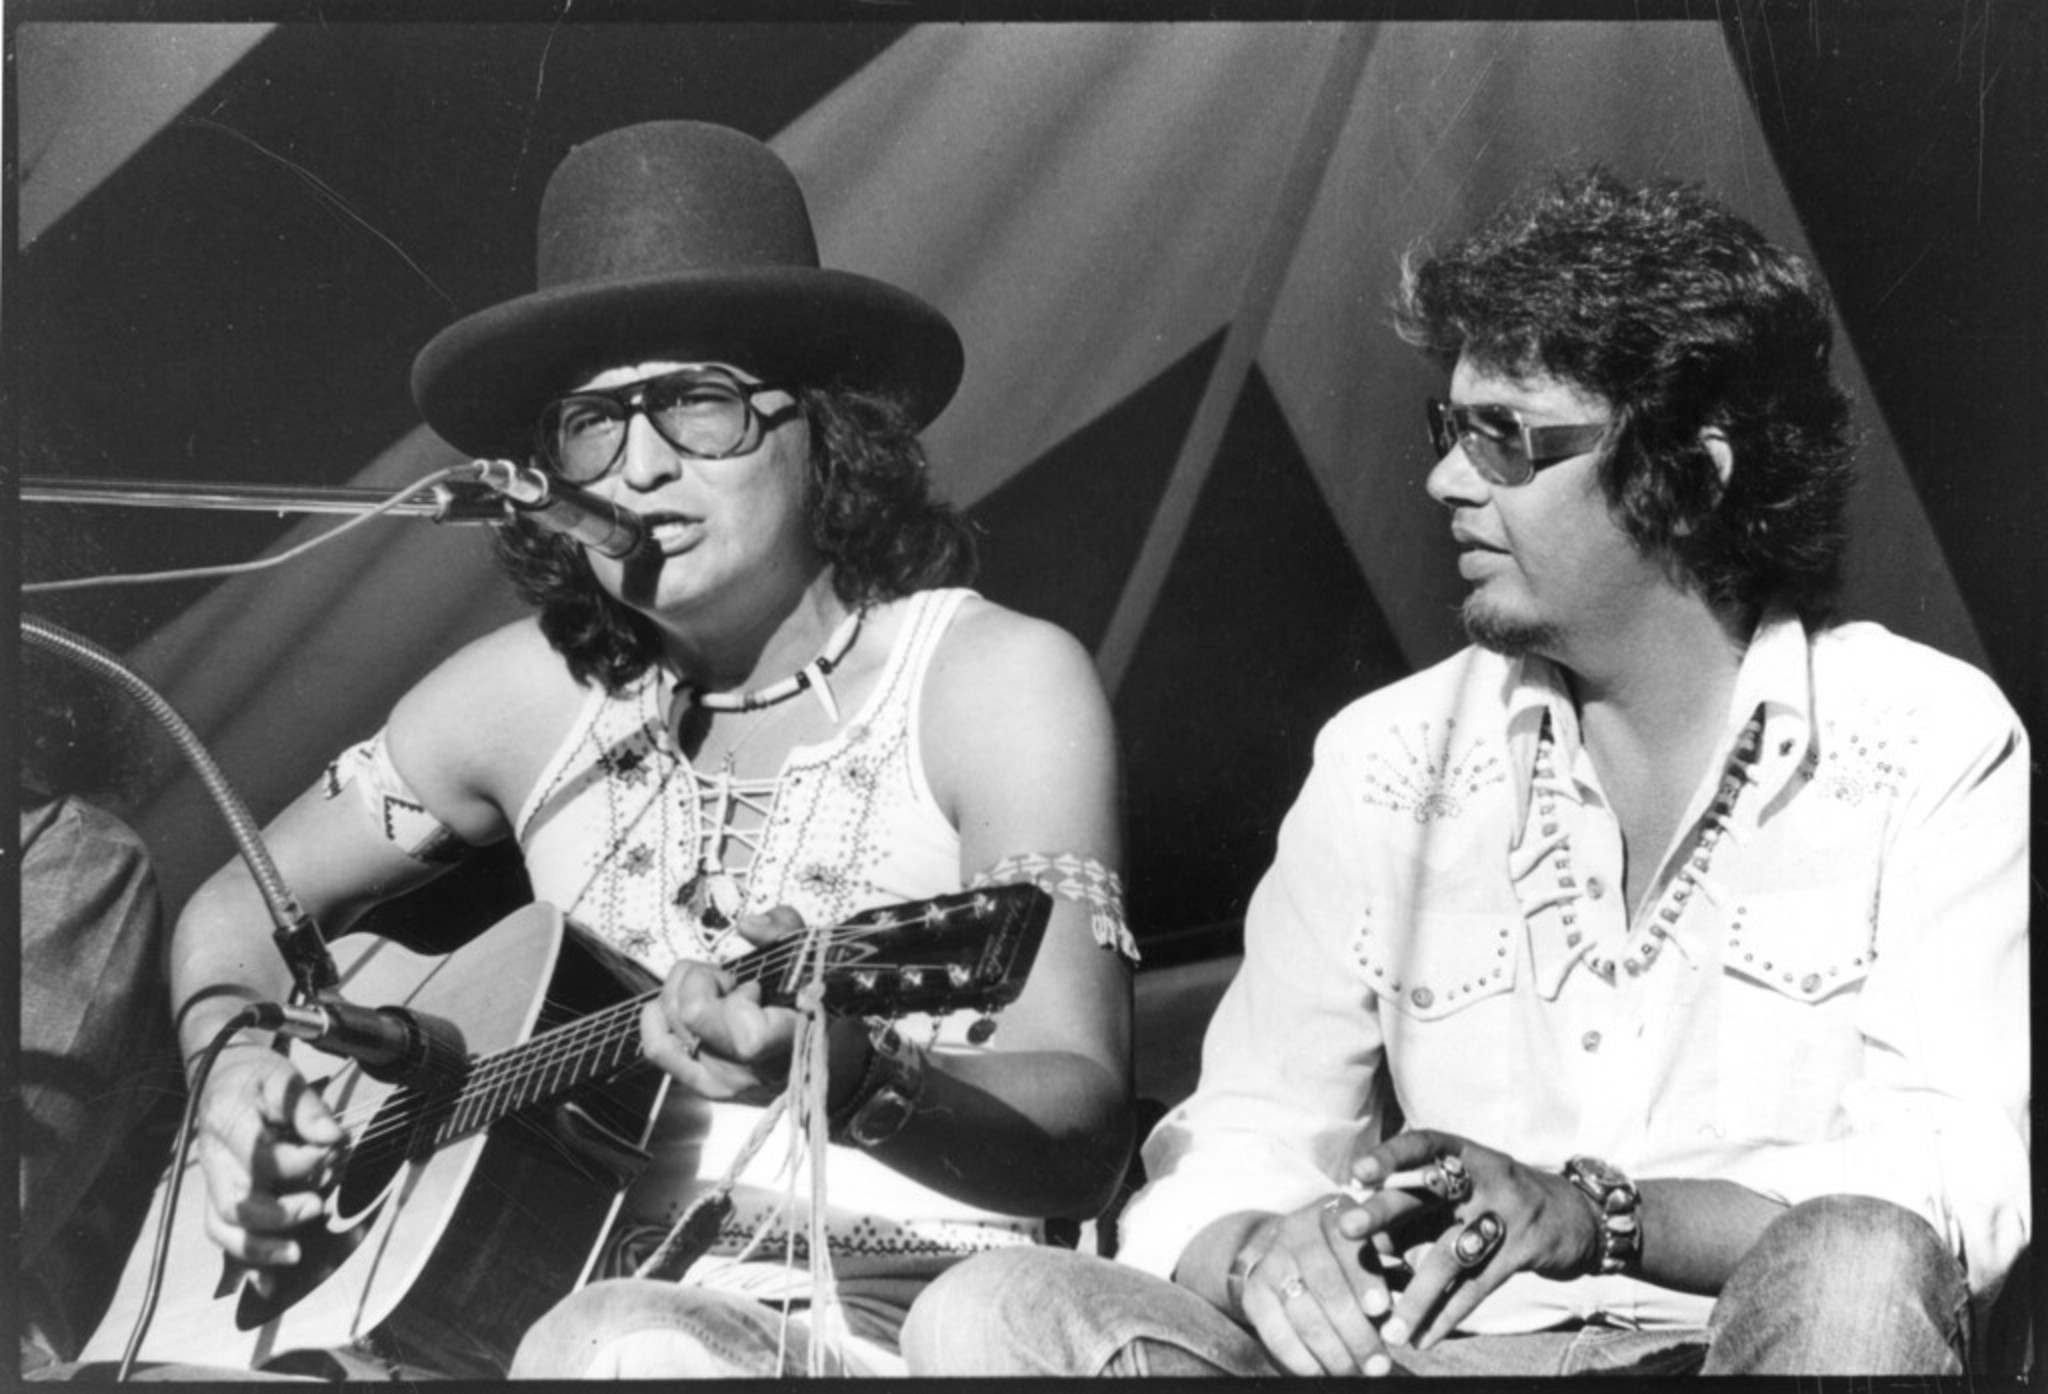 Shingoose, left, met Anishinaabe poet and spoken-word artist Duke Redbird, right, in 1973 in Toronto. It was a friendship and collaboration that would last for decades. (The Canadian Press files)